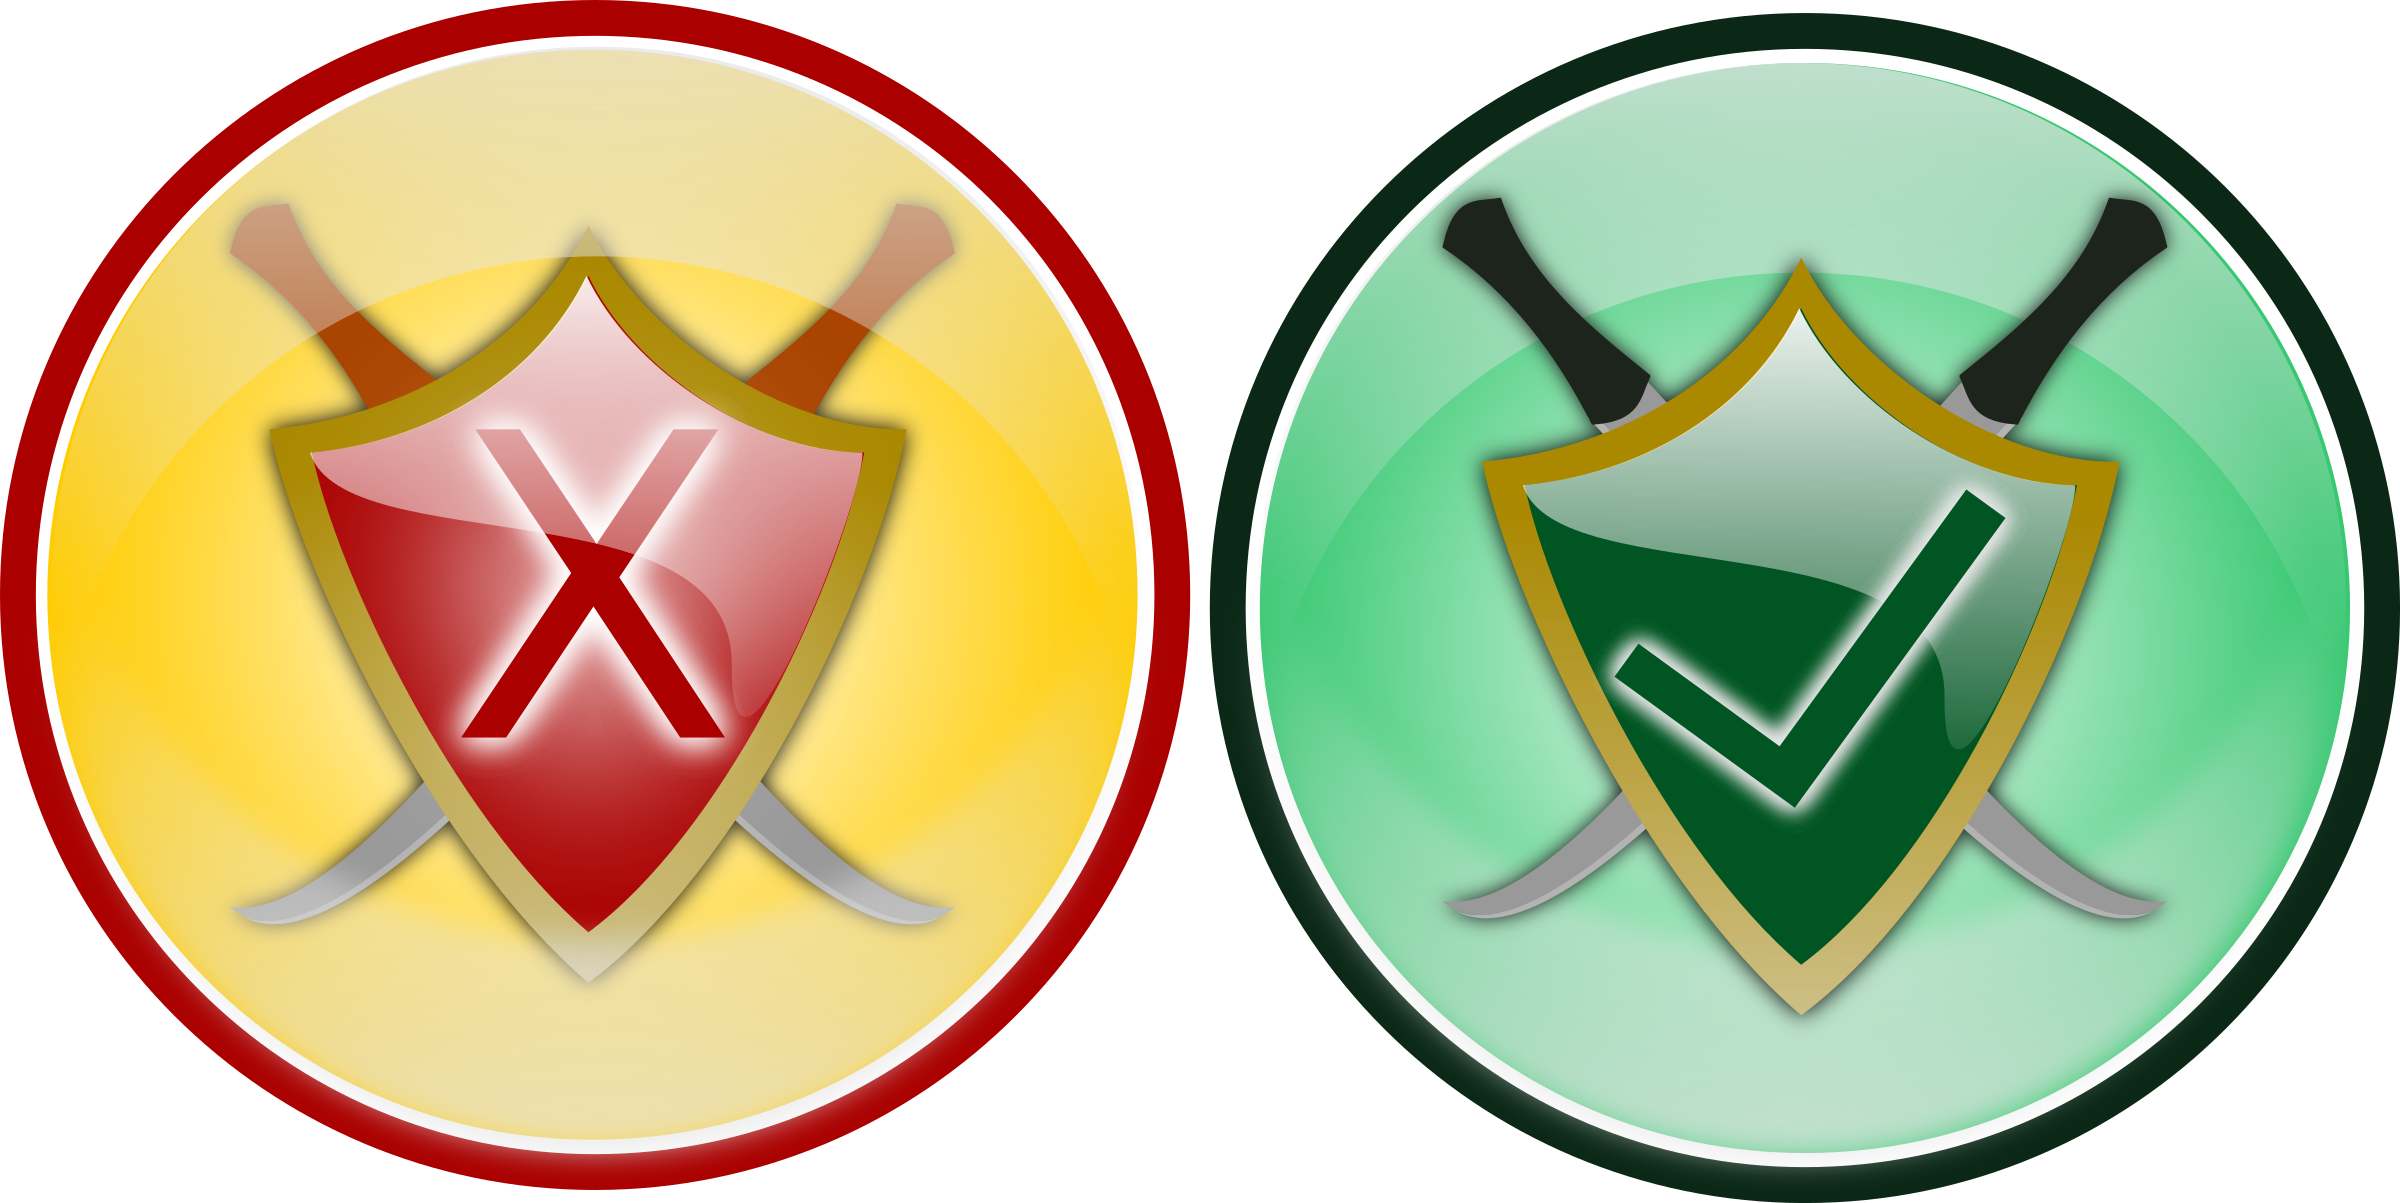 image freeuse library Icon big image png. Security badge clipart.